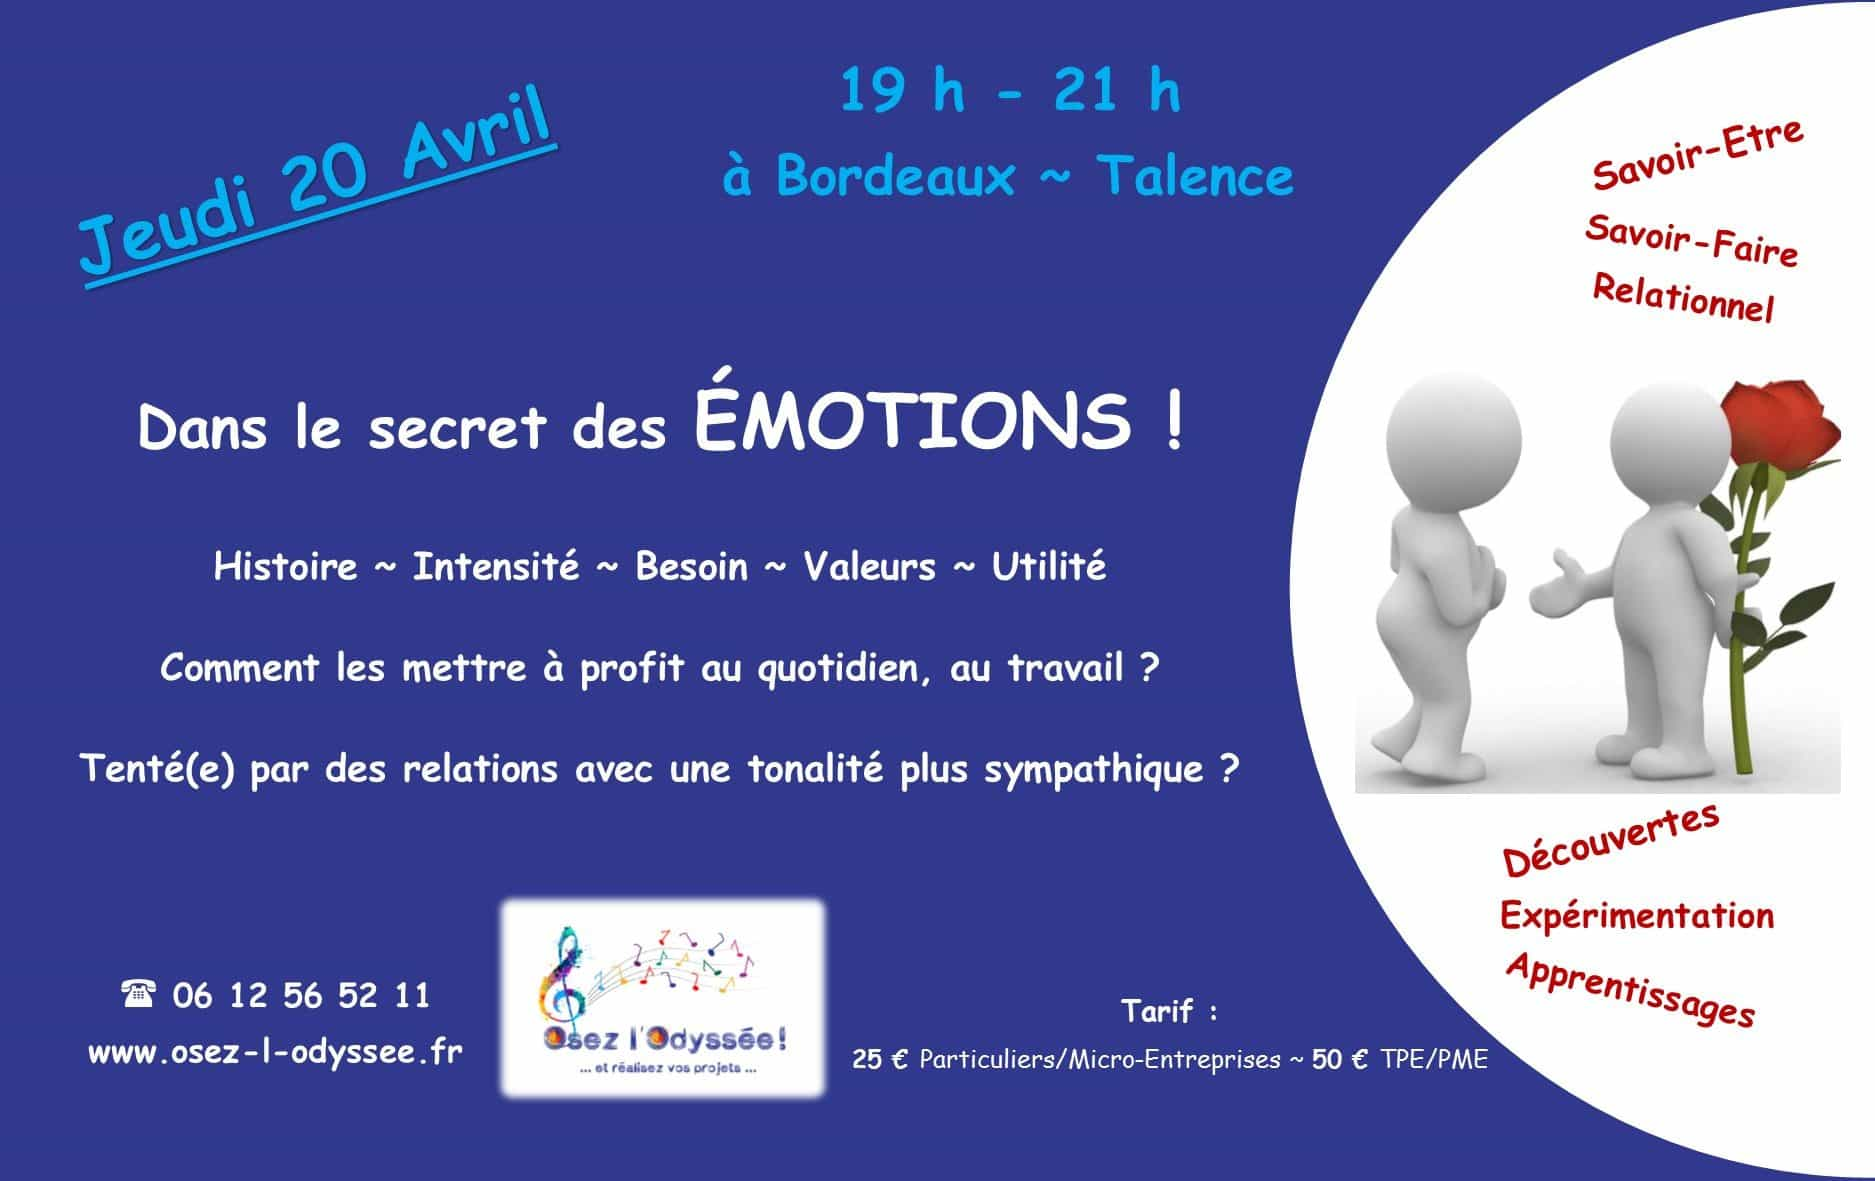 Atelier Coaching à Bordeaux 2017 AVRIL Osez l'Odyssee Emotions